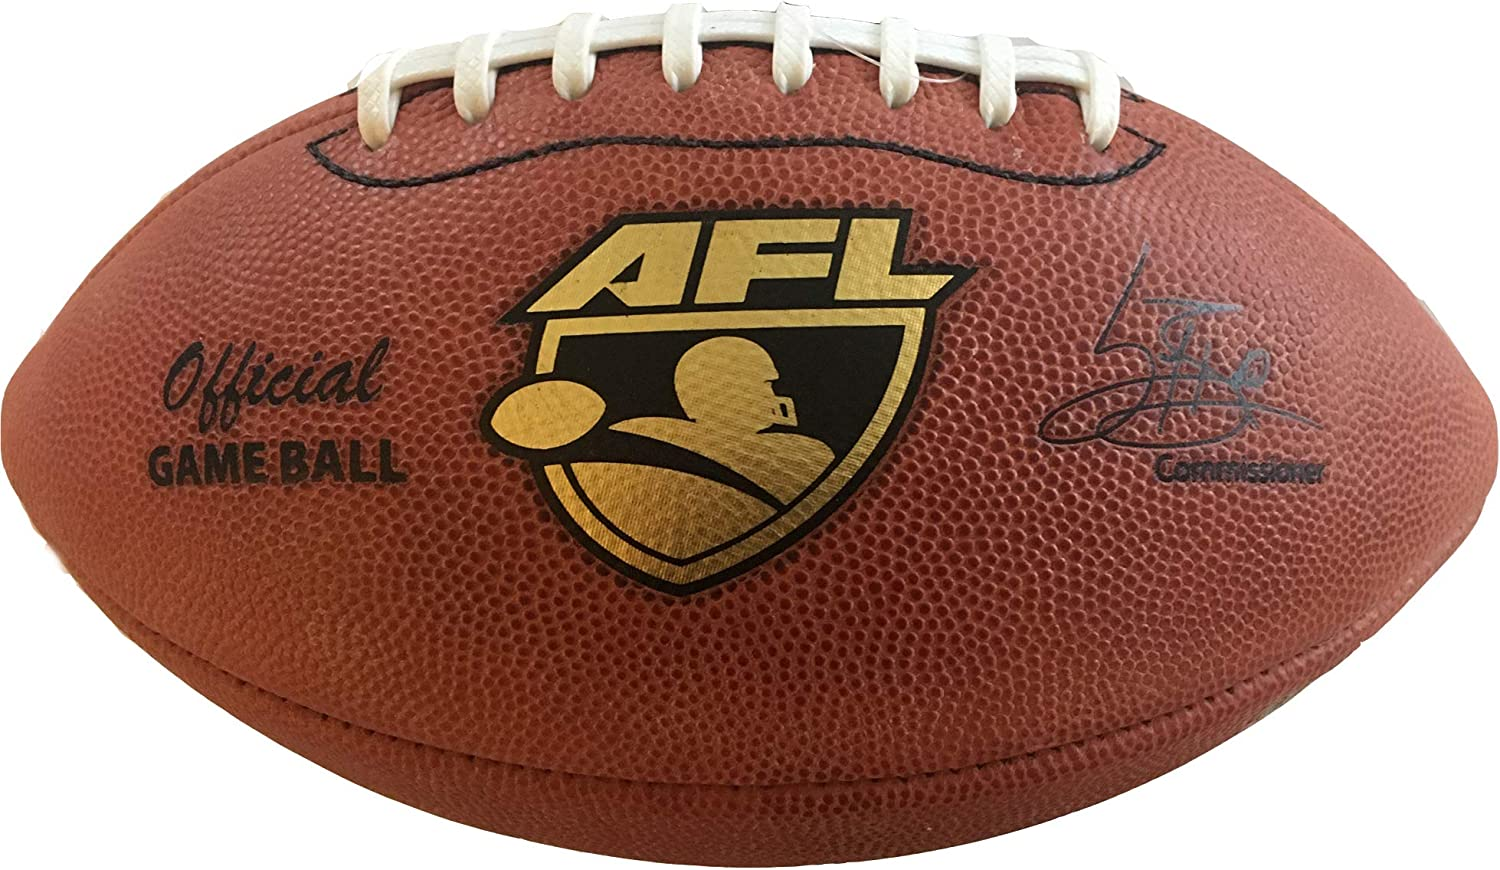 Spalding AFL Official Leather Game Ball Arena Football League 2016 Production White Lace Stripe MPN 727078l